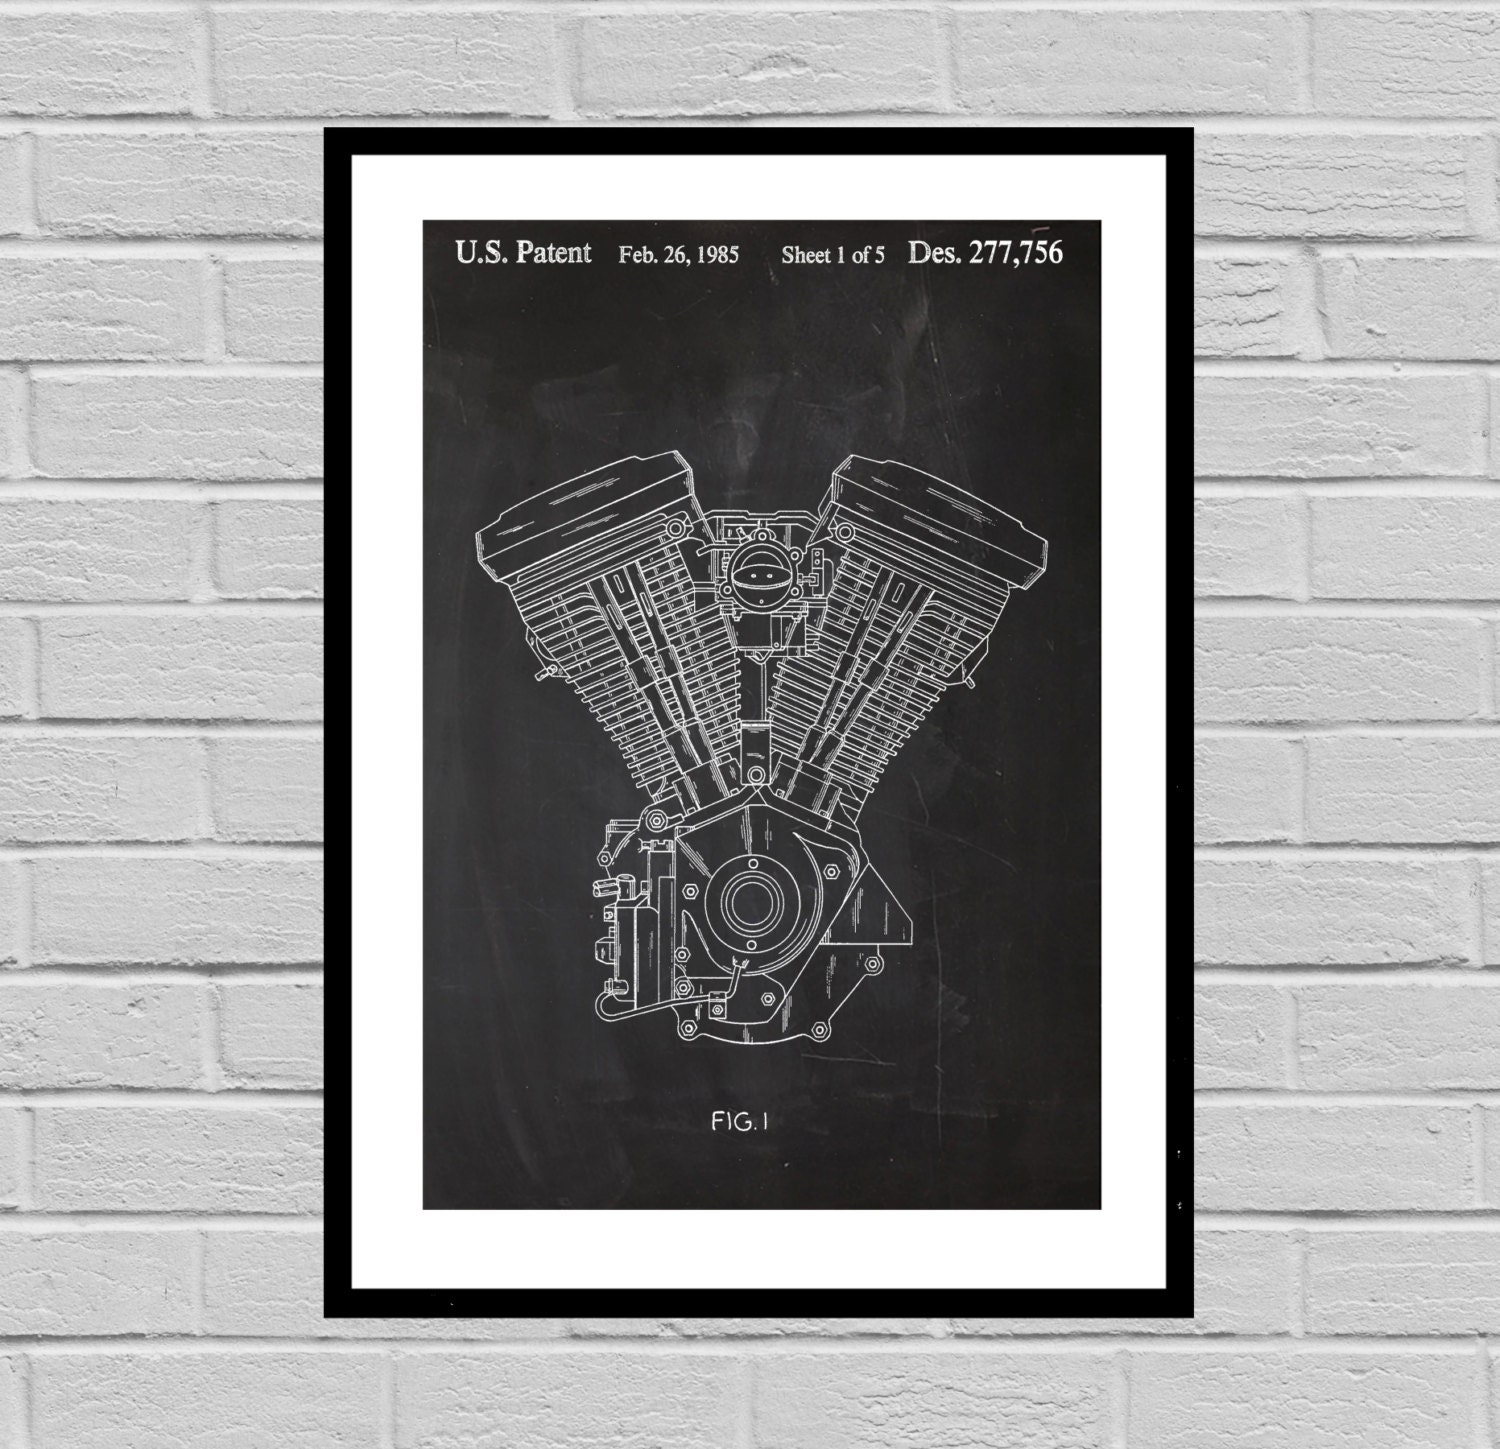 Harley davidson motorcycle blueprint patent poster wall art harley davidson motorcycle blueprint patent poster wall art poster harley motorcycle print wall art poster patentprints harley art malvernweather